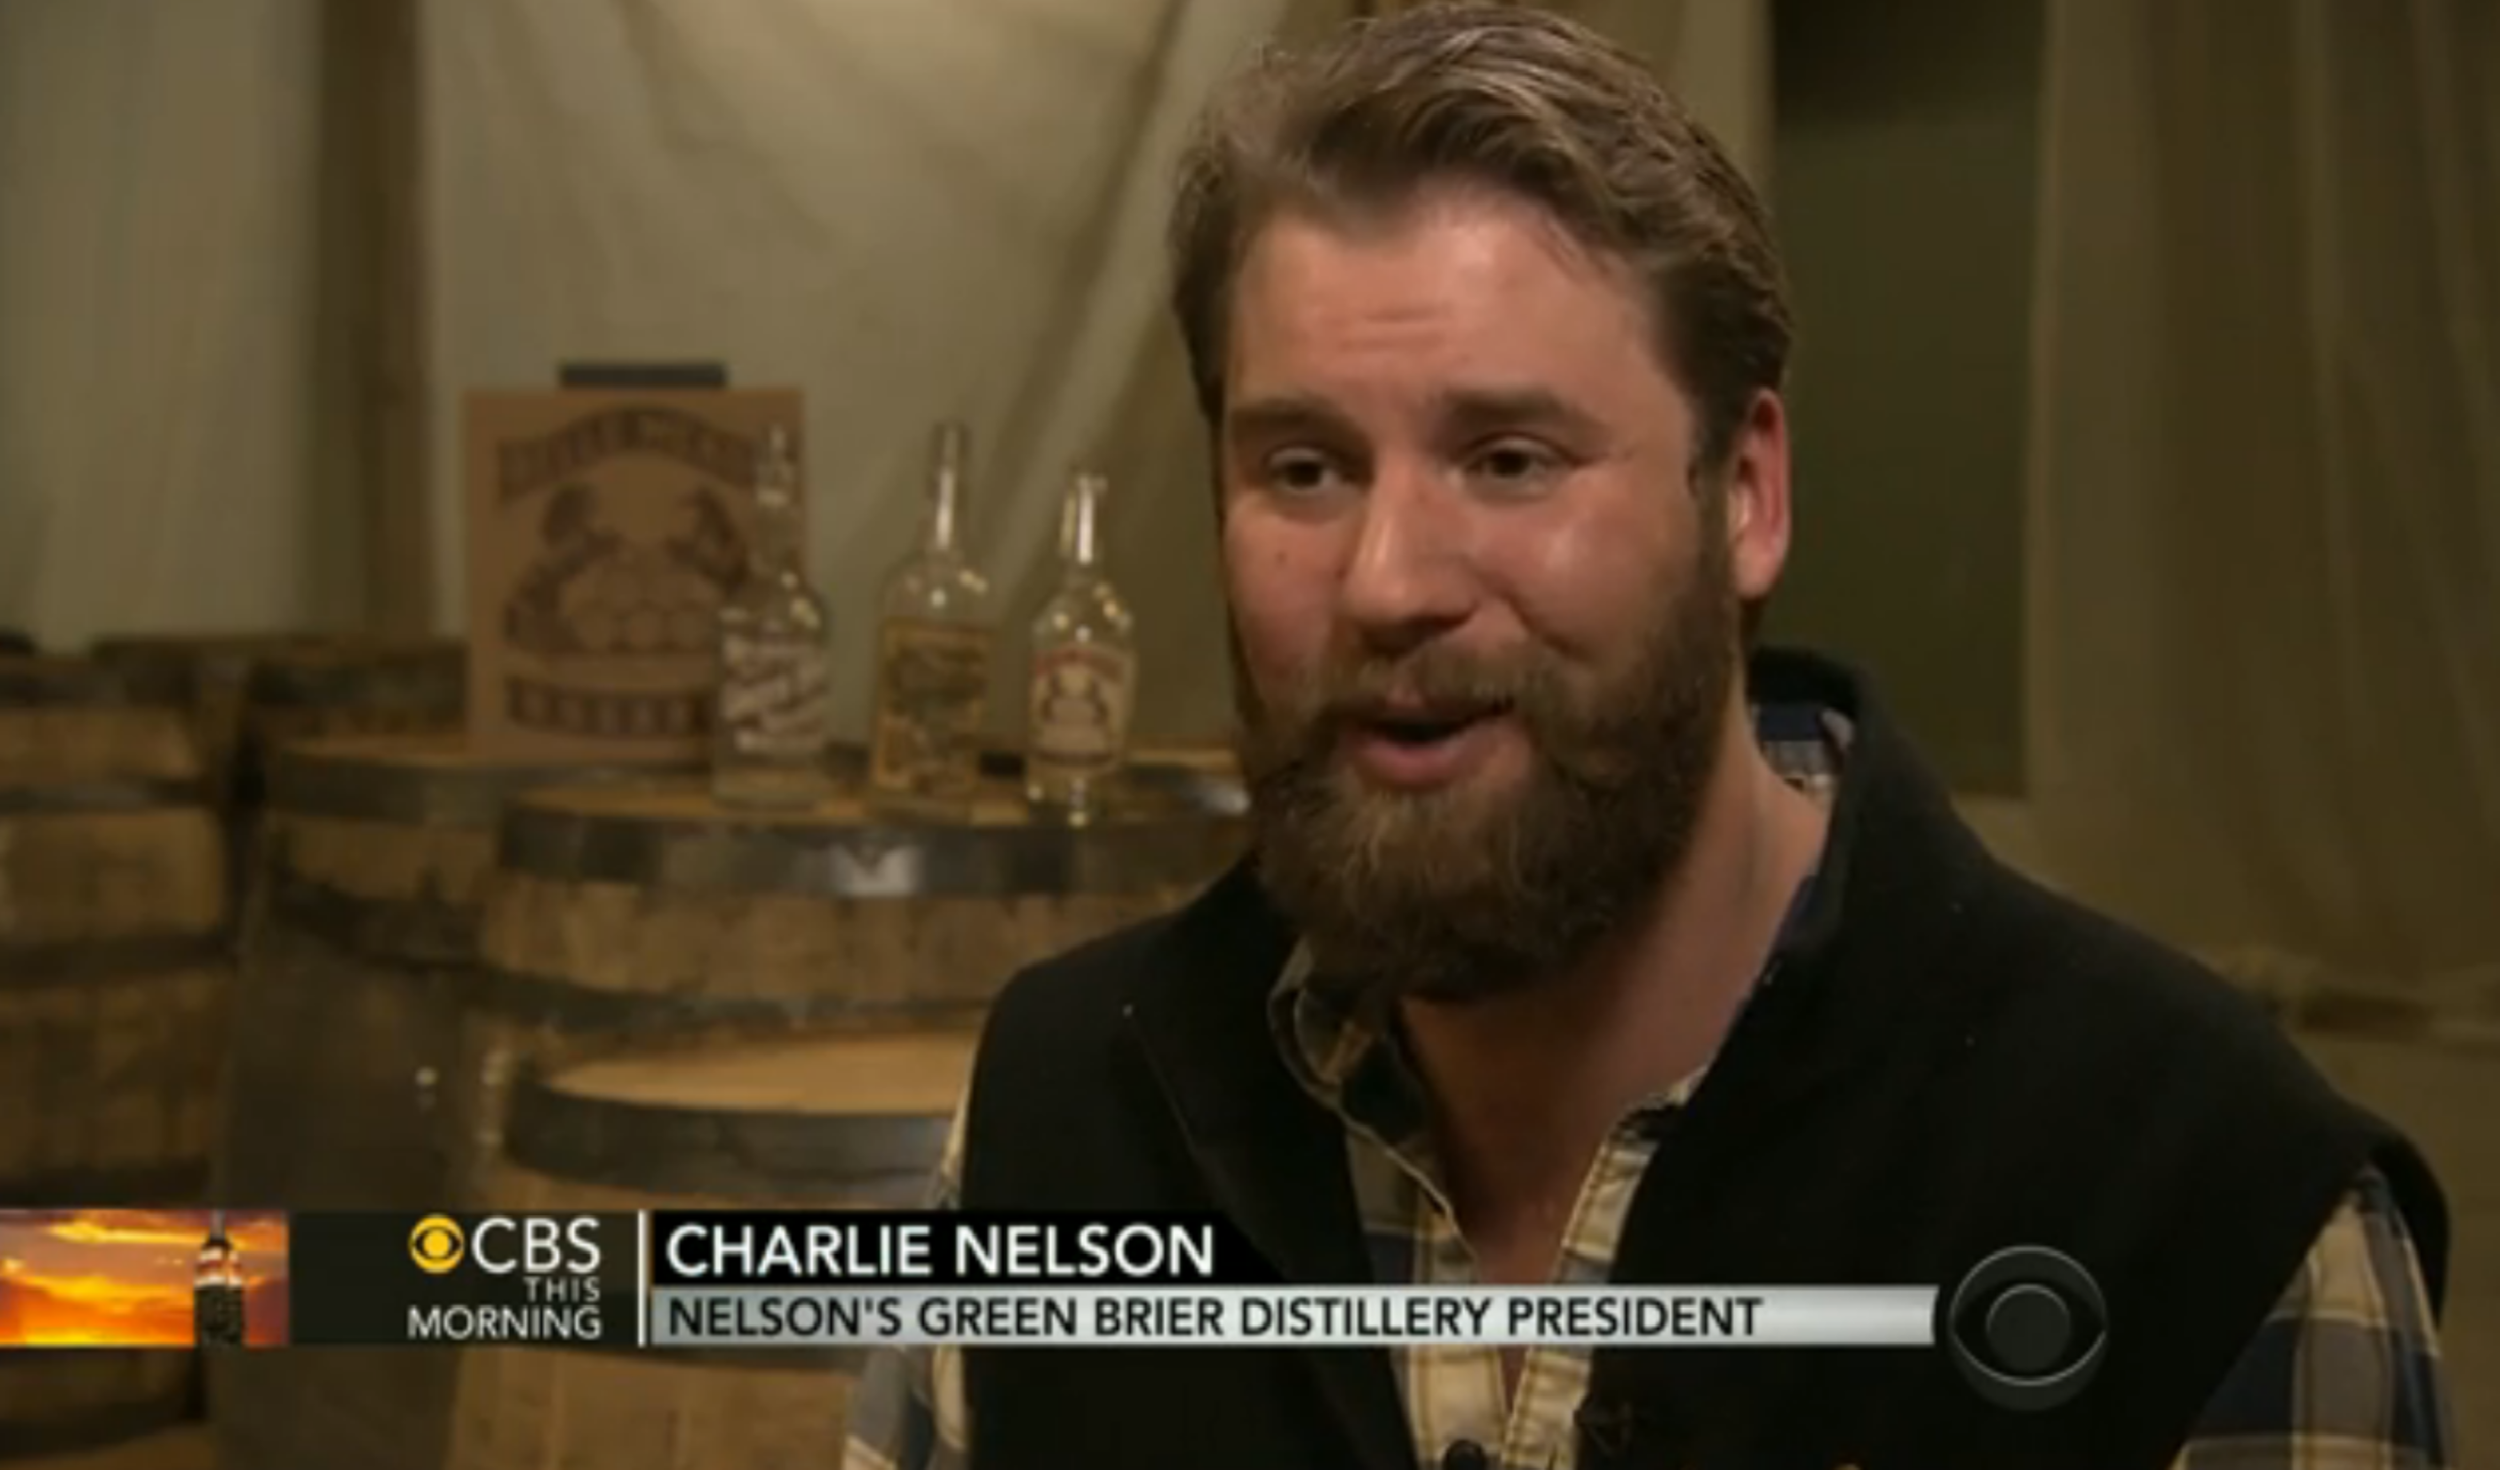 Charlie Nelson on CBS News